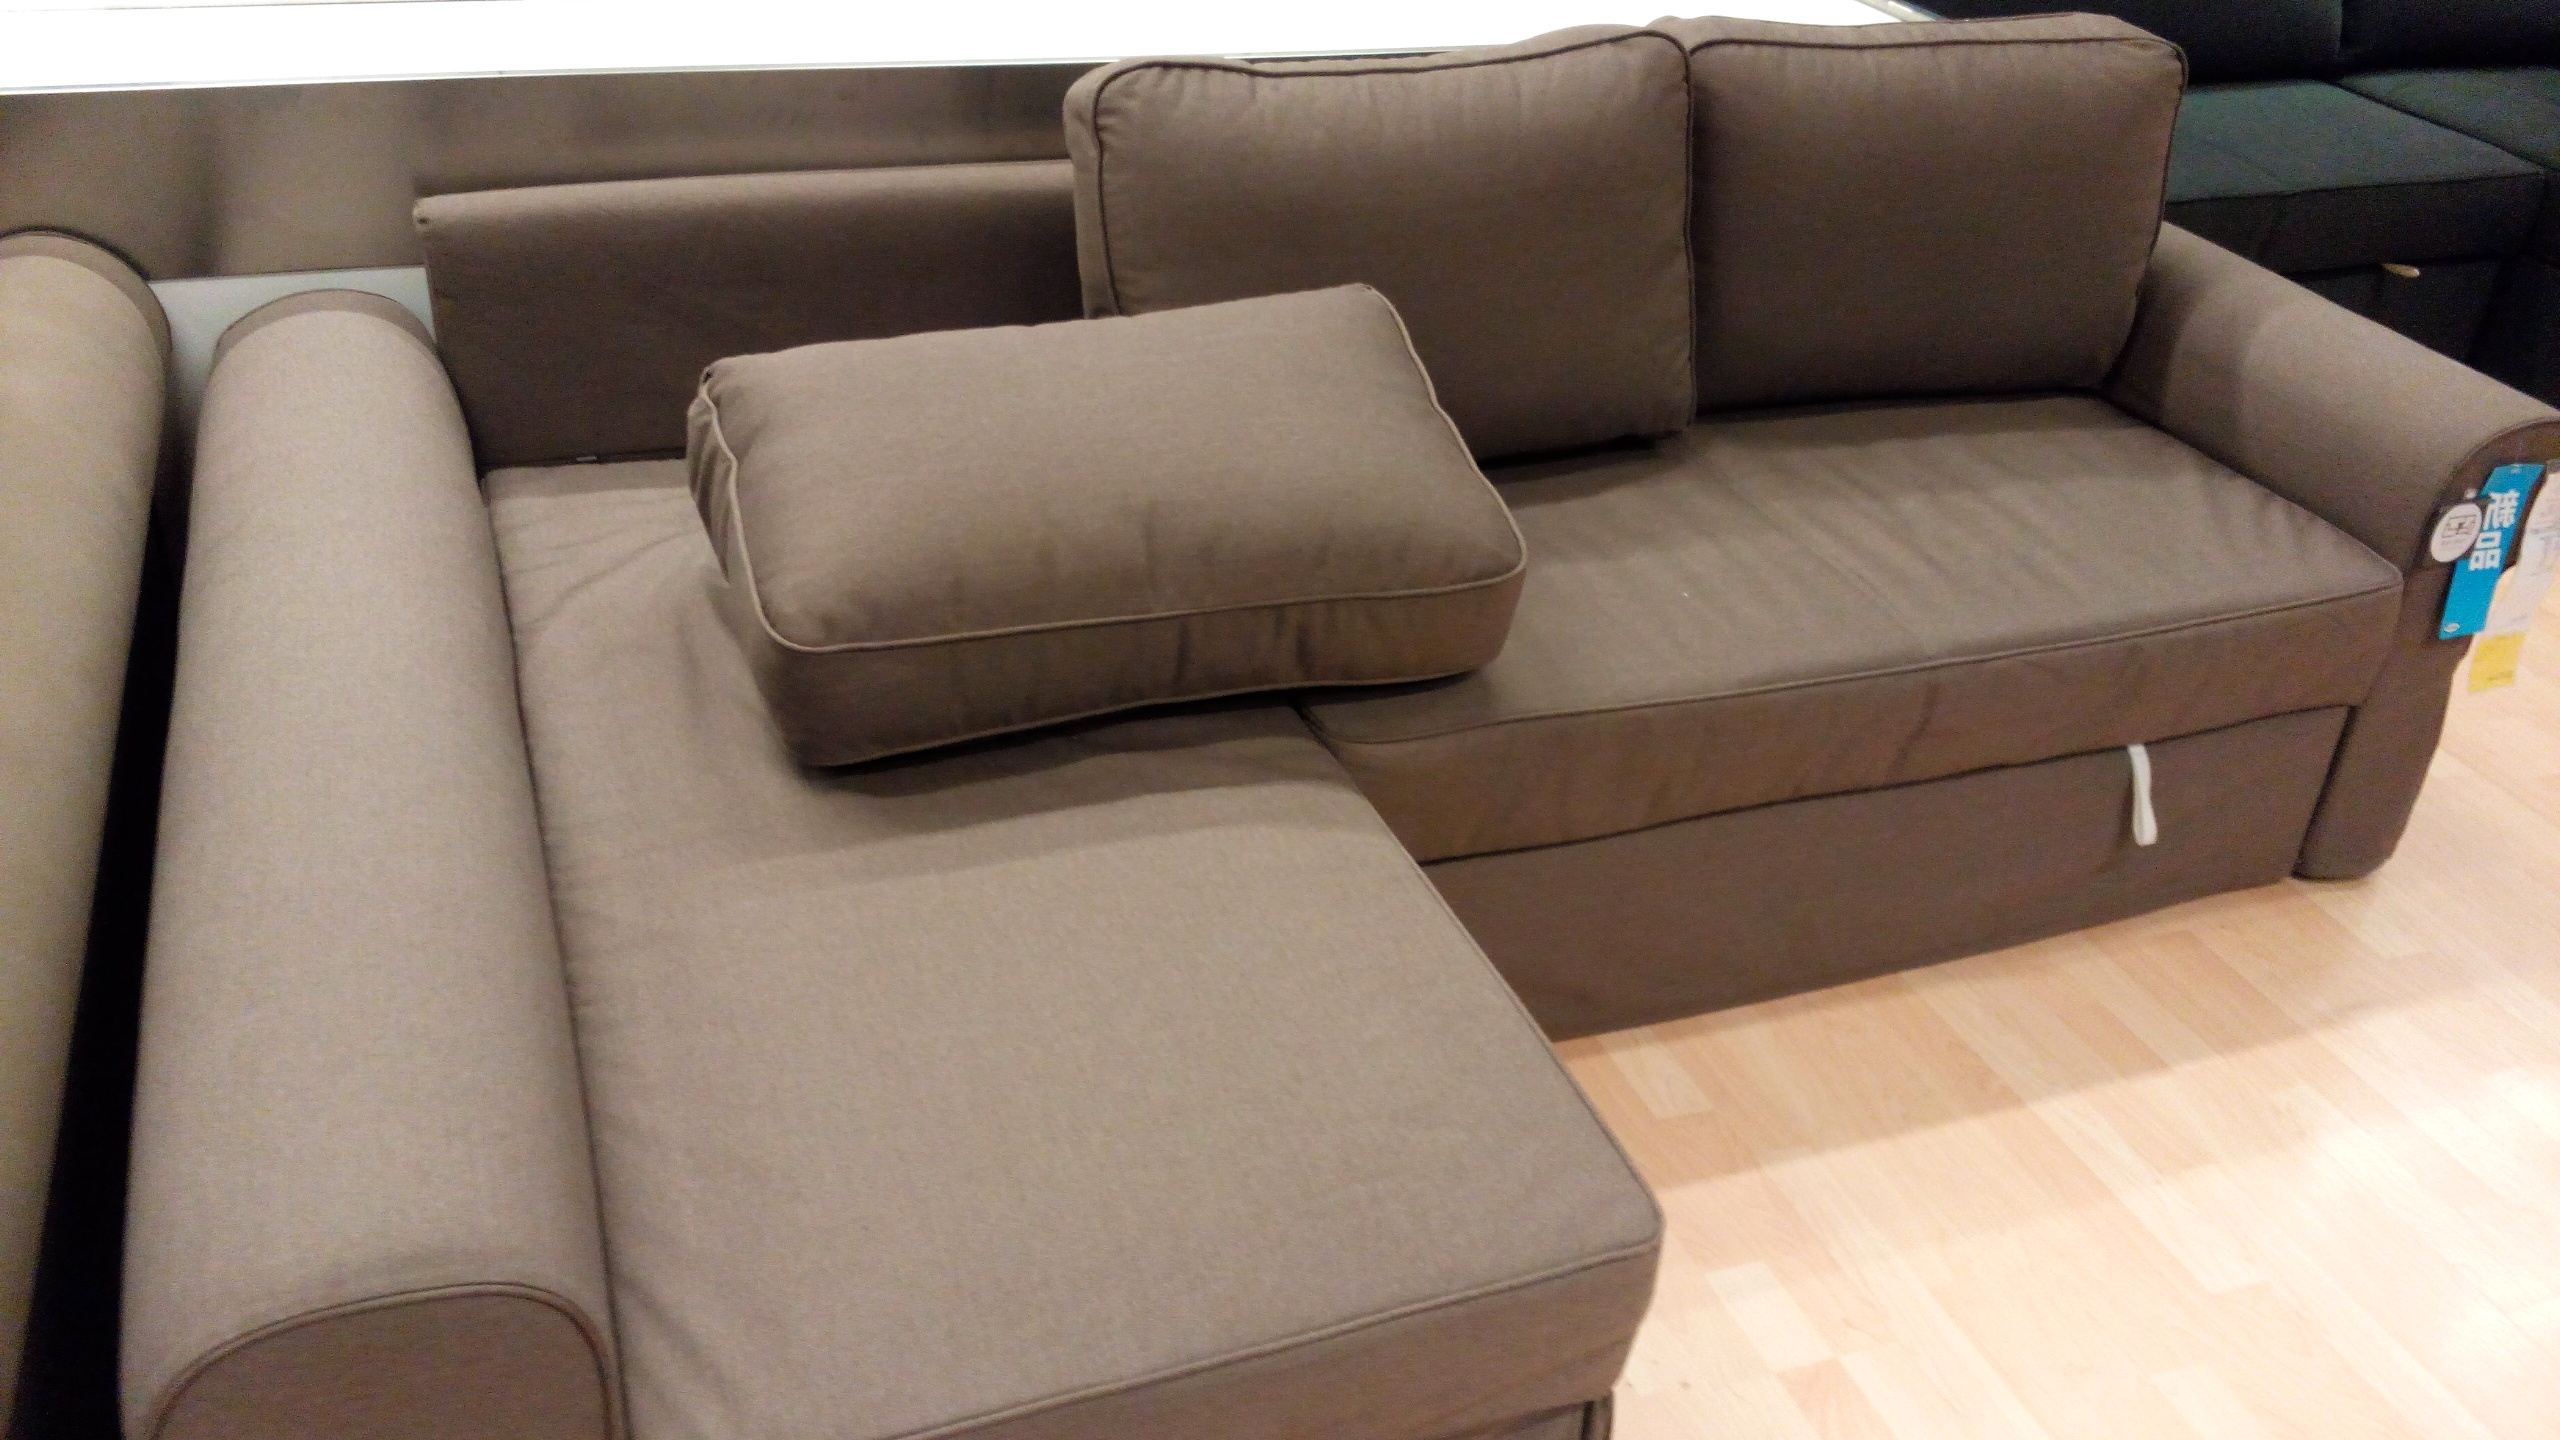 Widely Used Manstad Sofas Pertaining To Ikea Vilasund And Backabro Review – Return Of The Sofa Bed Clones! (View 20 of 20)